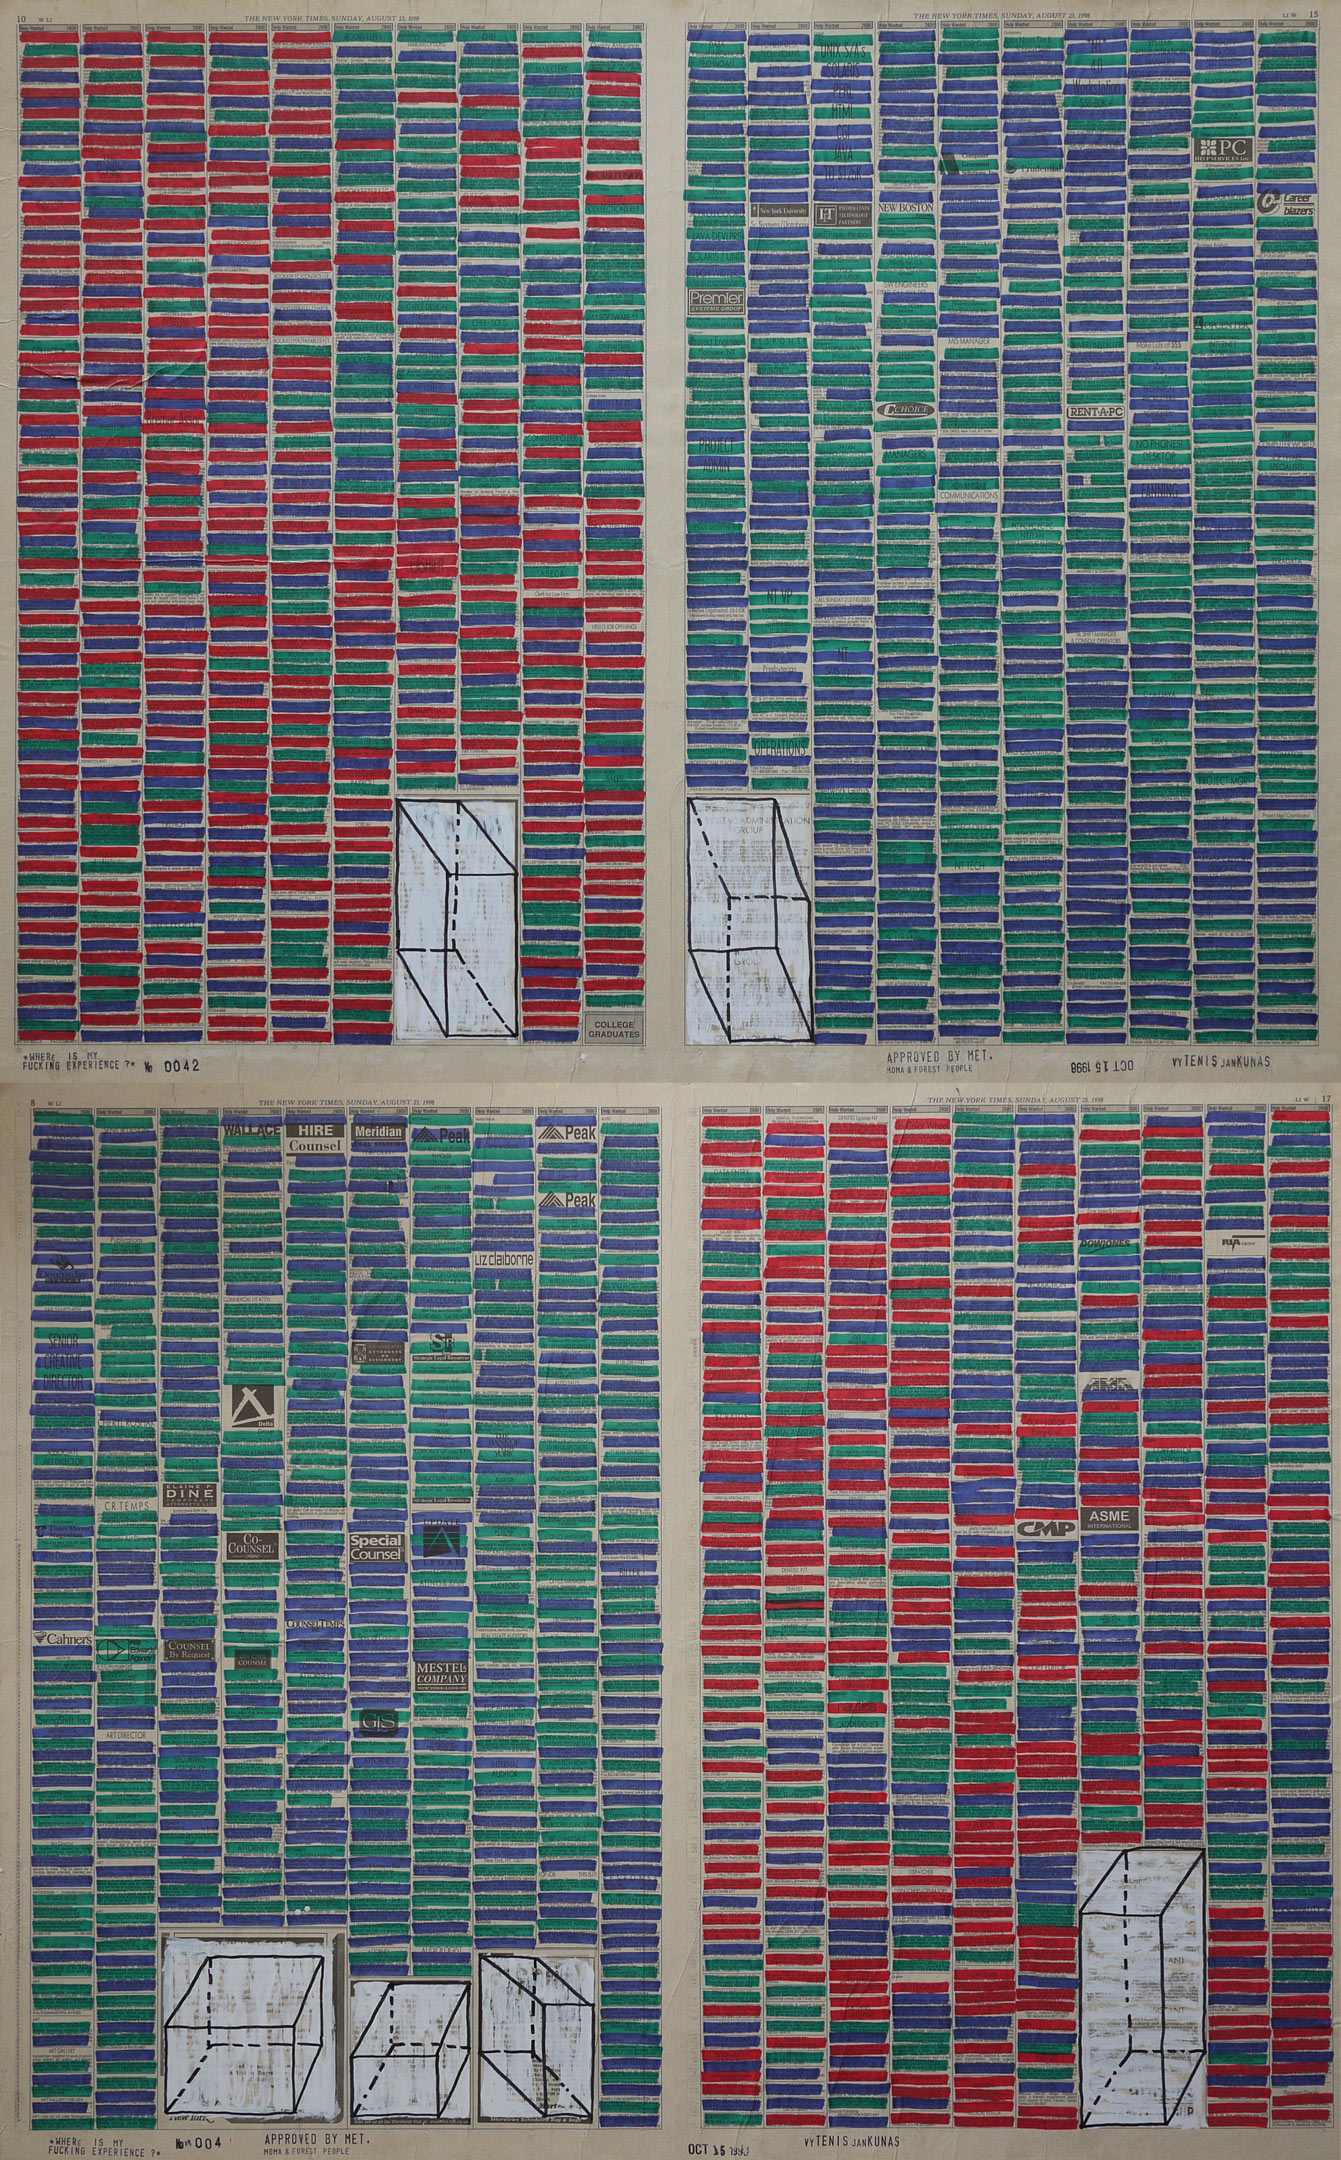 Where Is My Fucking Experience? #0042 , 1998. Permanent markers and correction fluid on newspaper mounted on canvas.